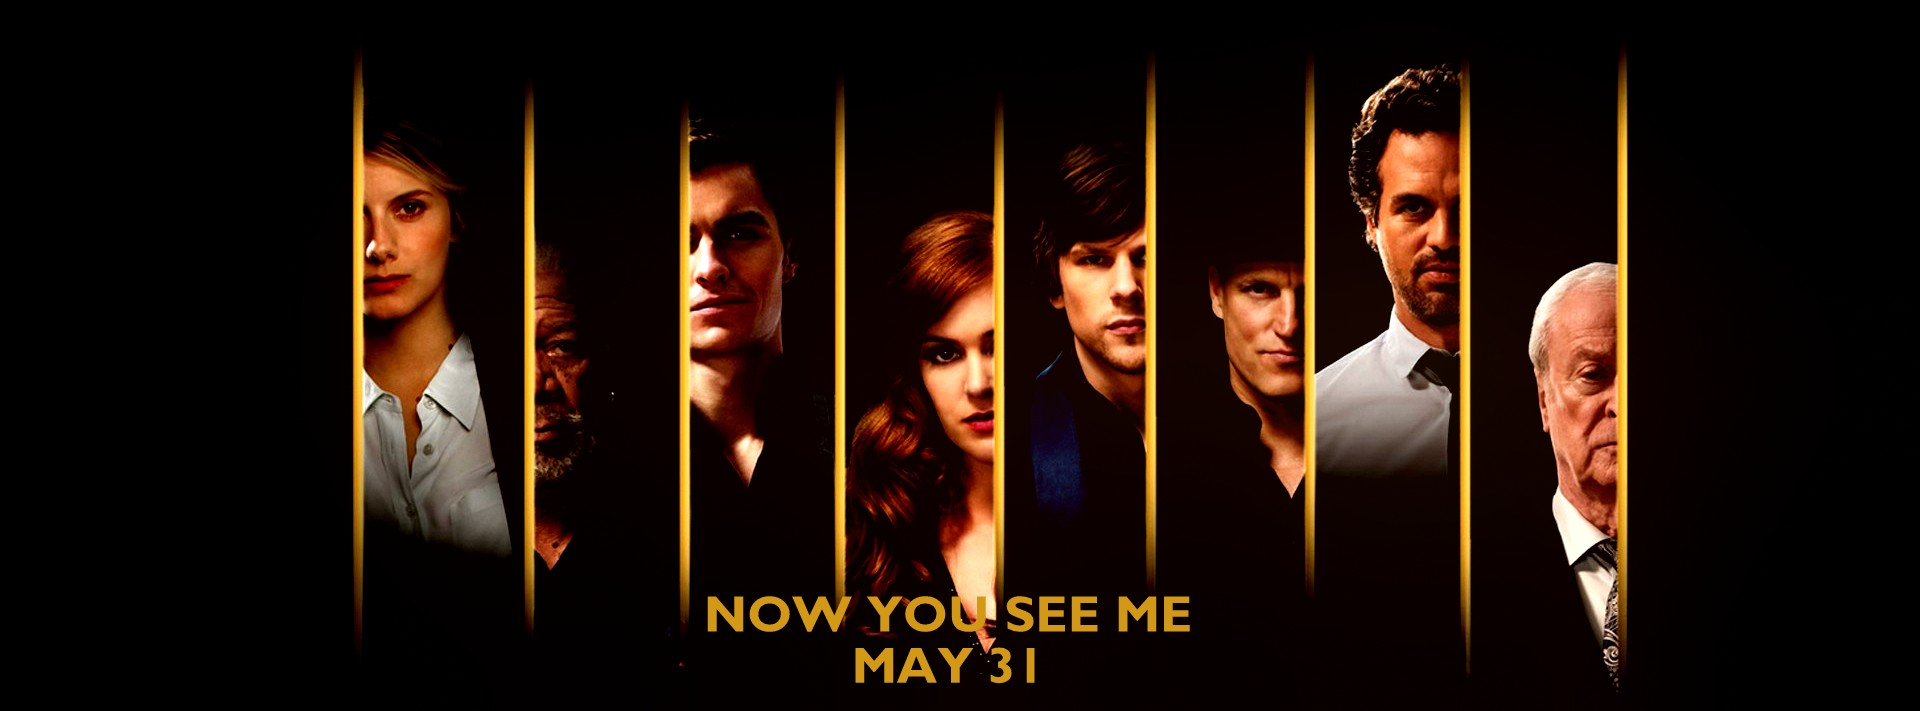 now-you-see-me-wallpaper-1